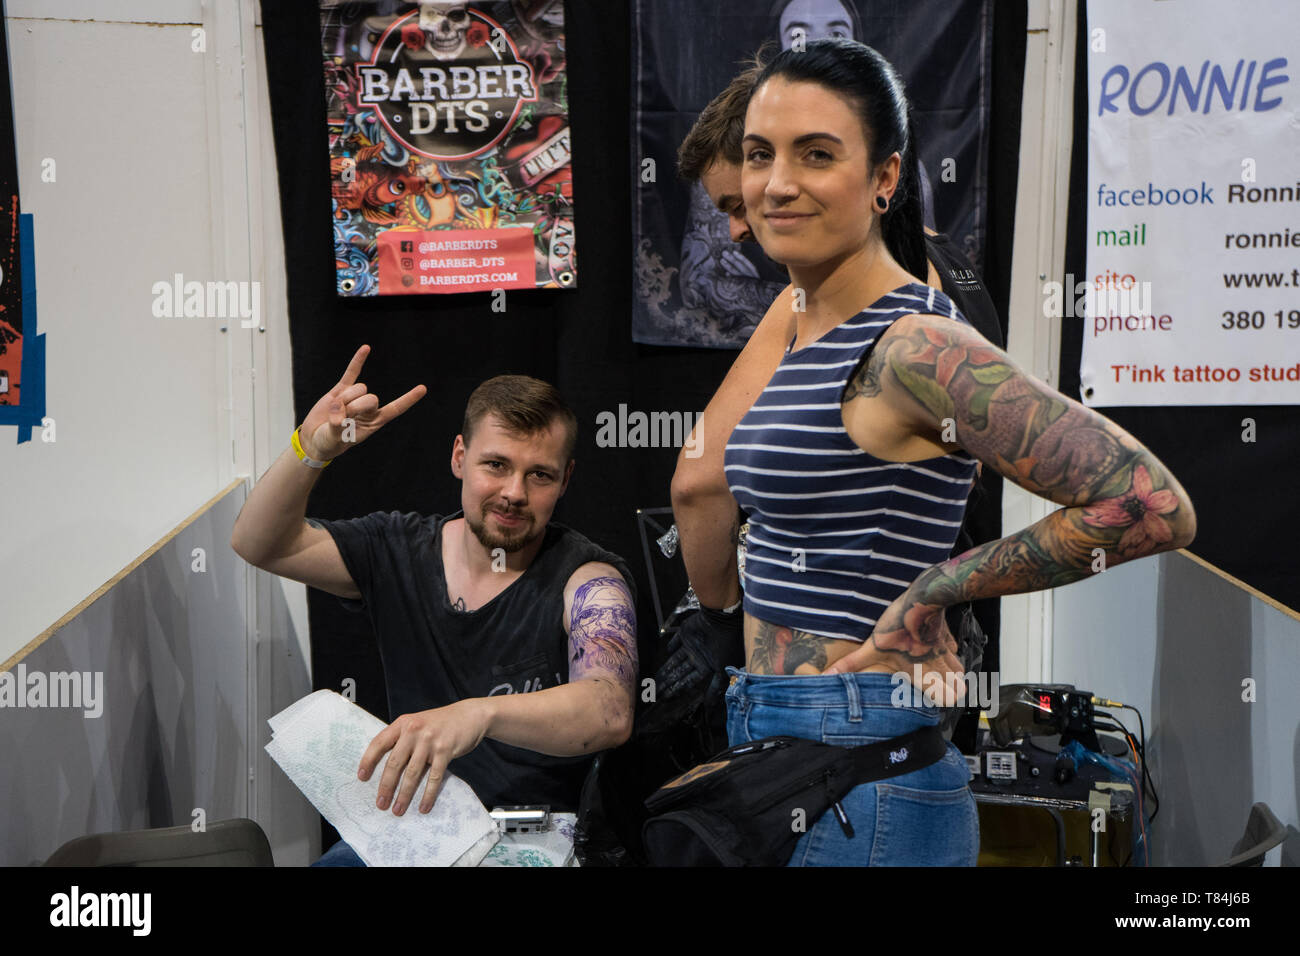 Athens, Attica, Greece. 10th June, 2019. Tattoo artists seen posing for a pic during the event.The Athens Tattoo Convention is a three day annual convention about tattoo and it takes place in Athens, Greece. It has been recognized as one of the best in Europe with visitors from all over the world who come exclusively for the Athens Tattoo Convention experience and also to meet some of the world's most respected tattoo artists. Credit: Nikos Pekiaridis/SOPA Images/ZUMA Wire/Alamy Live News - Stock Image